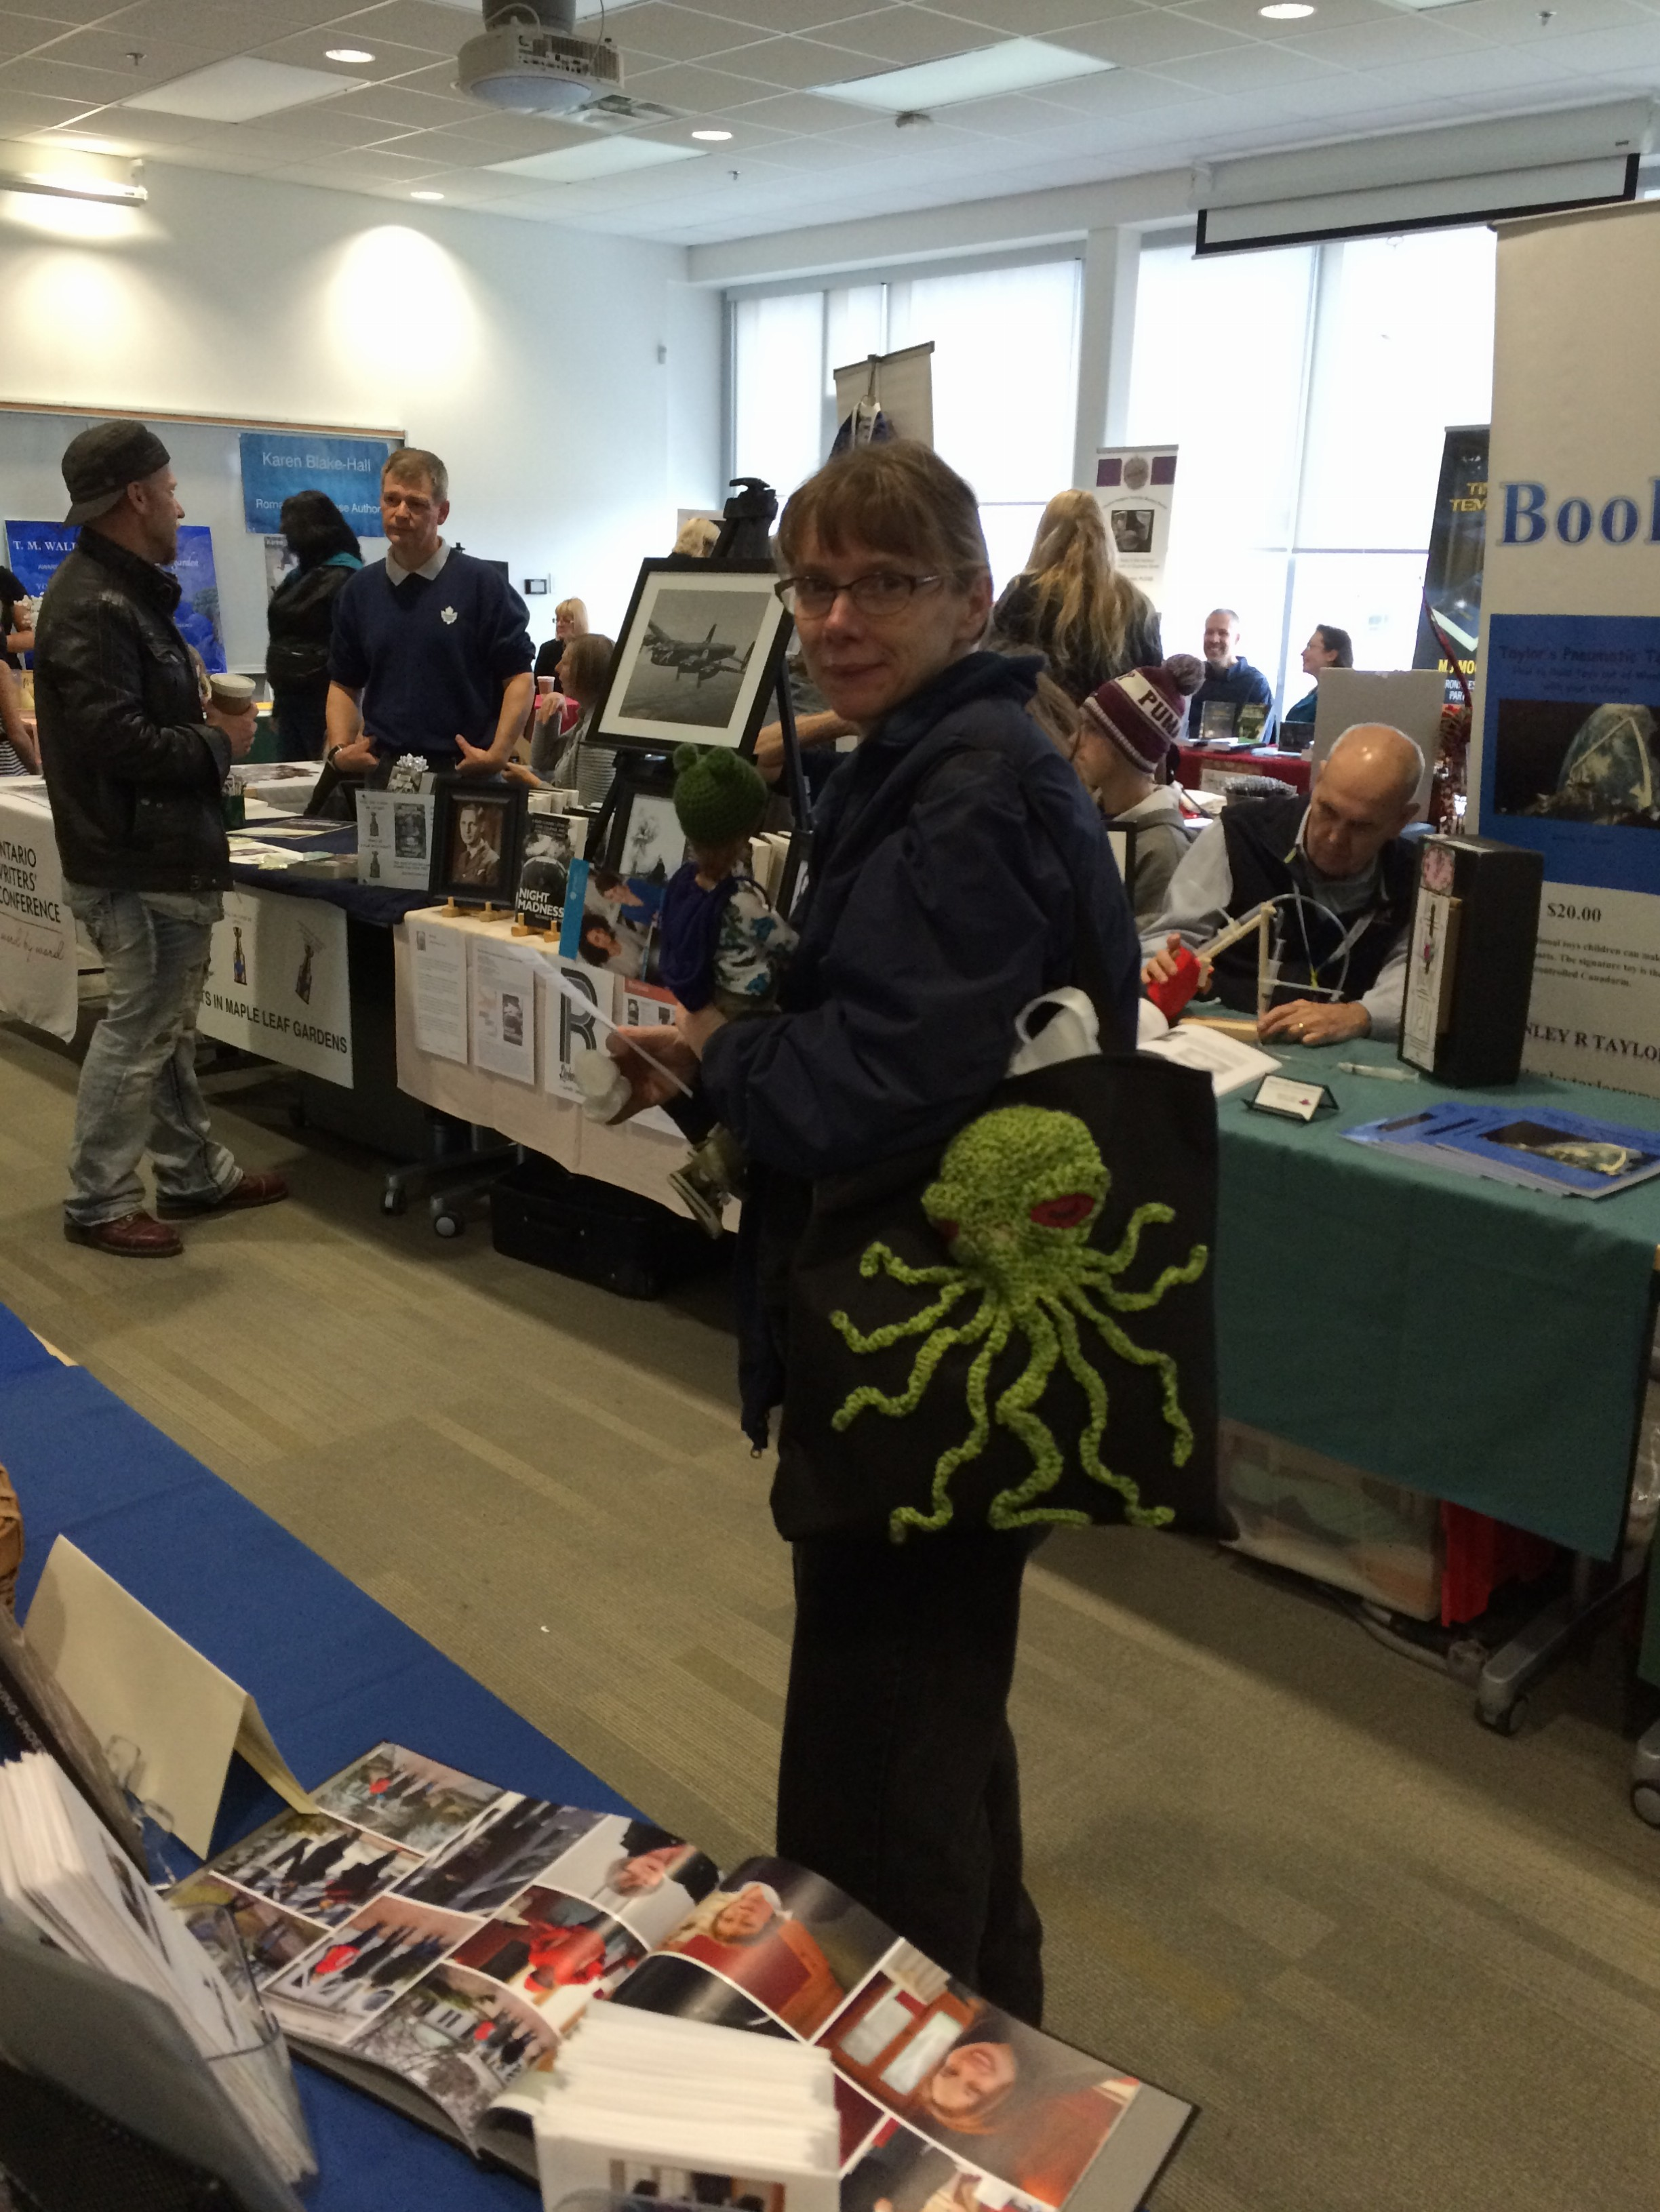 Cthulhu spotted at Bookapalooza!